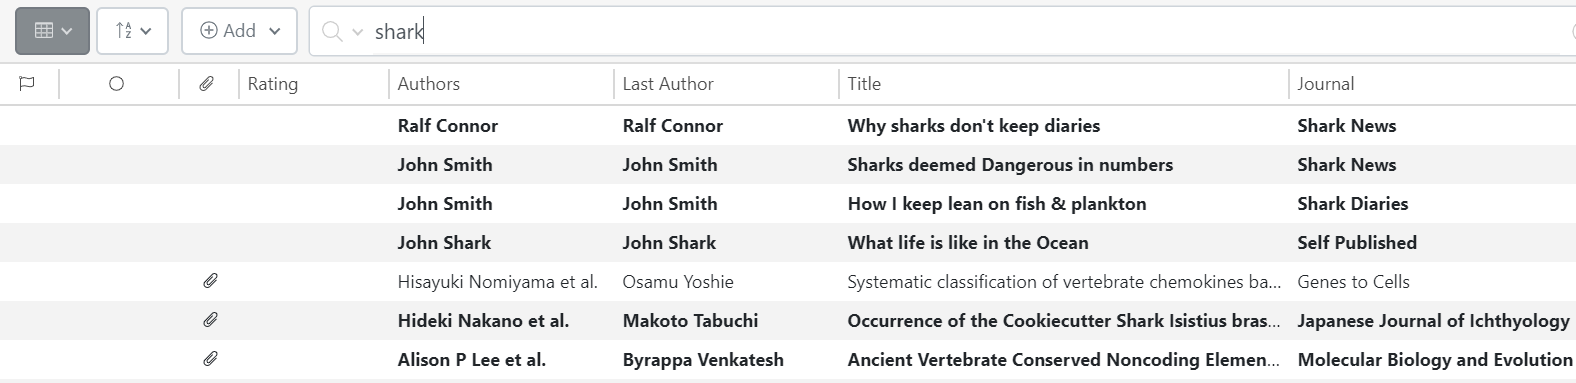 Screenshot of advance searching personal library in ReadCube Papers